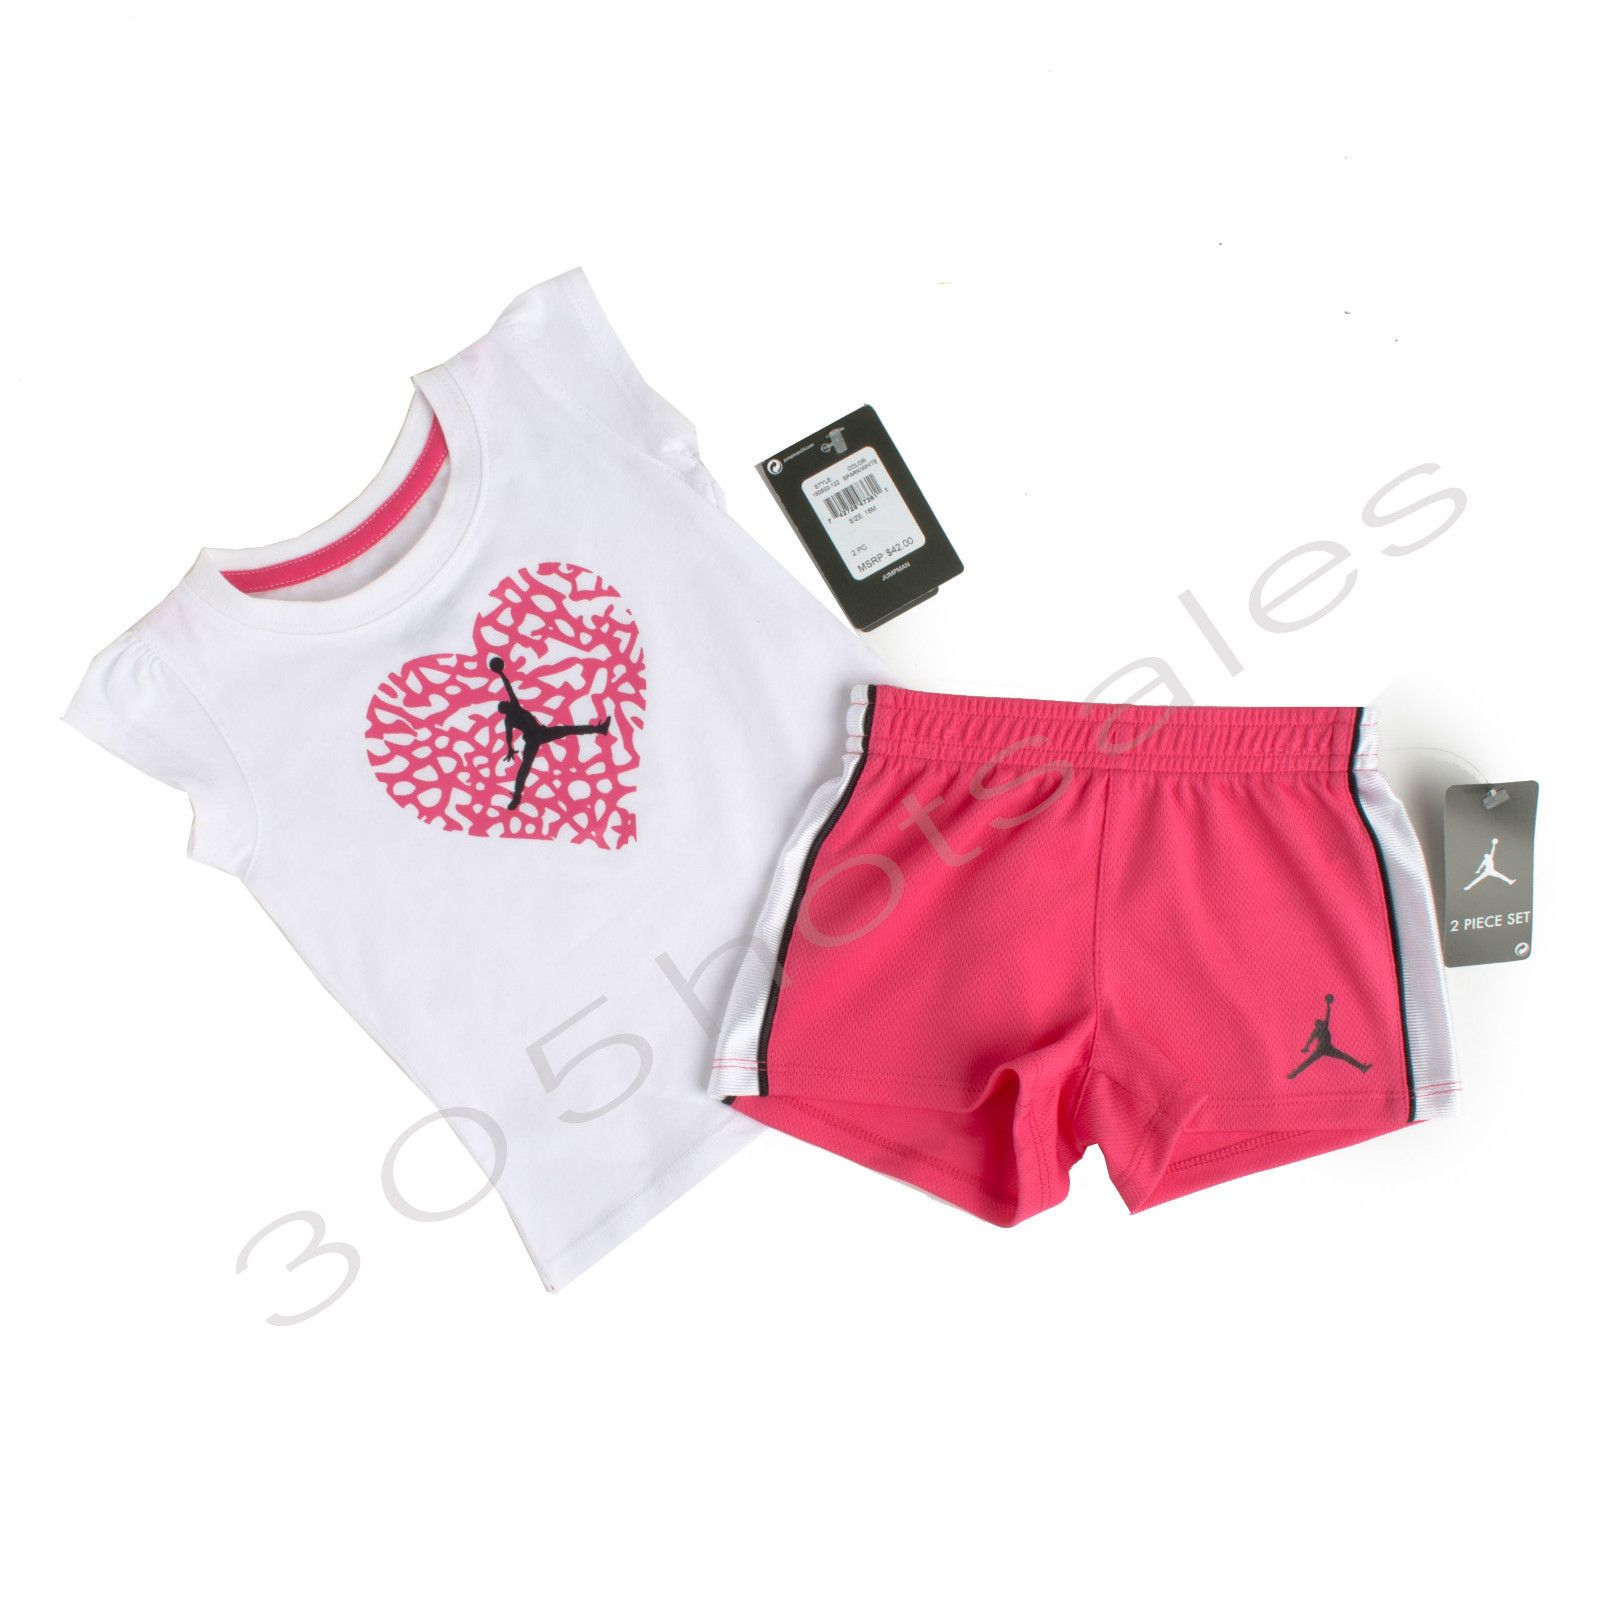 b2cc7ddc3ce0 Jordan outfit for Kay. $40 Nike Air Jordan Toddler Girl's Outfit Set Short  and Shirt ...